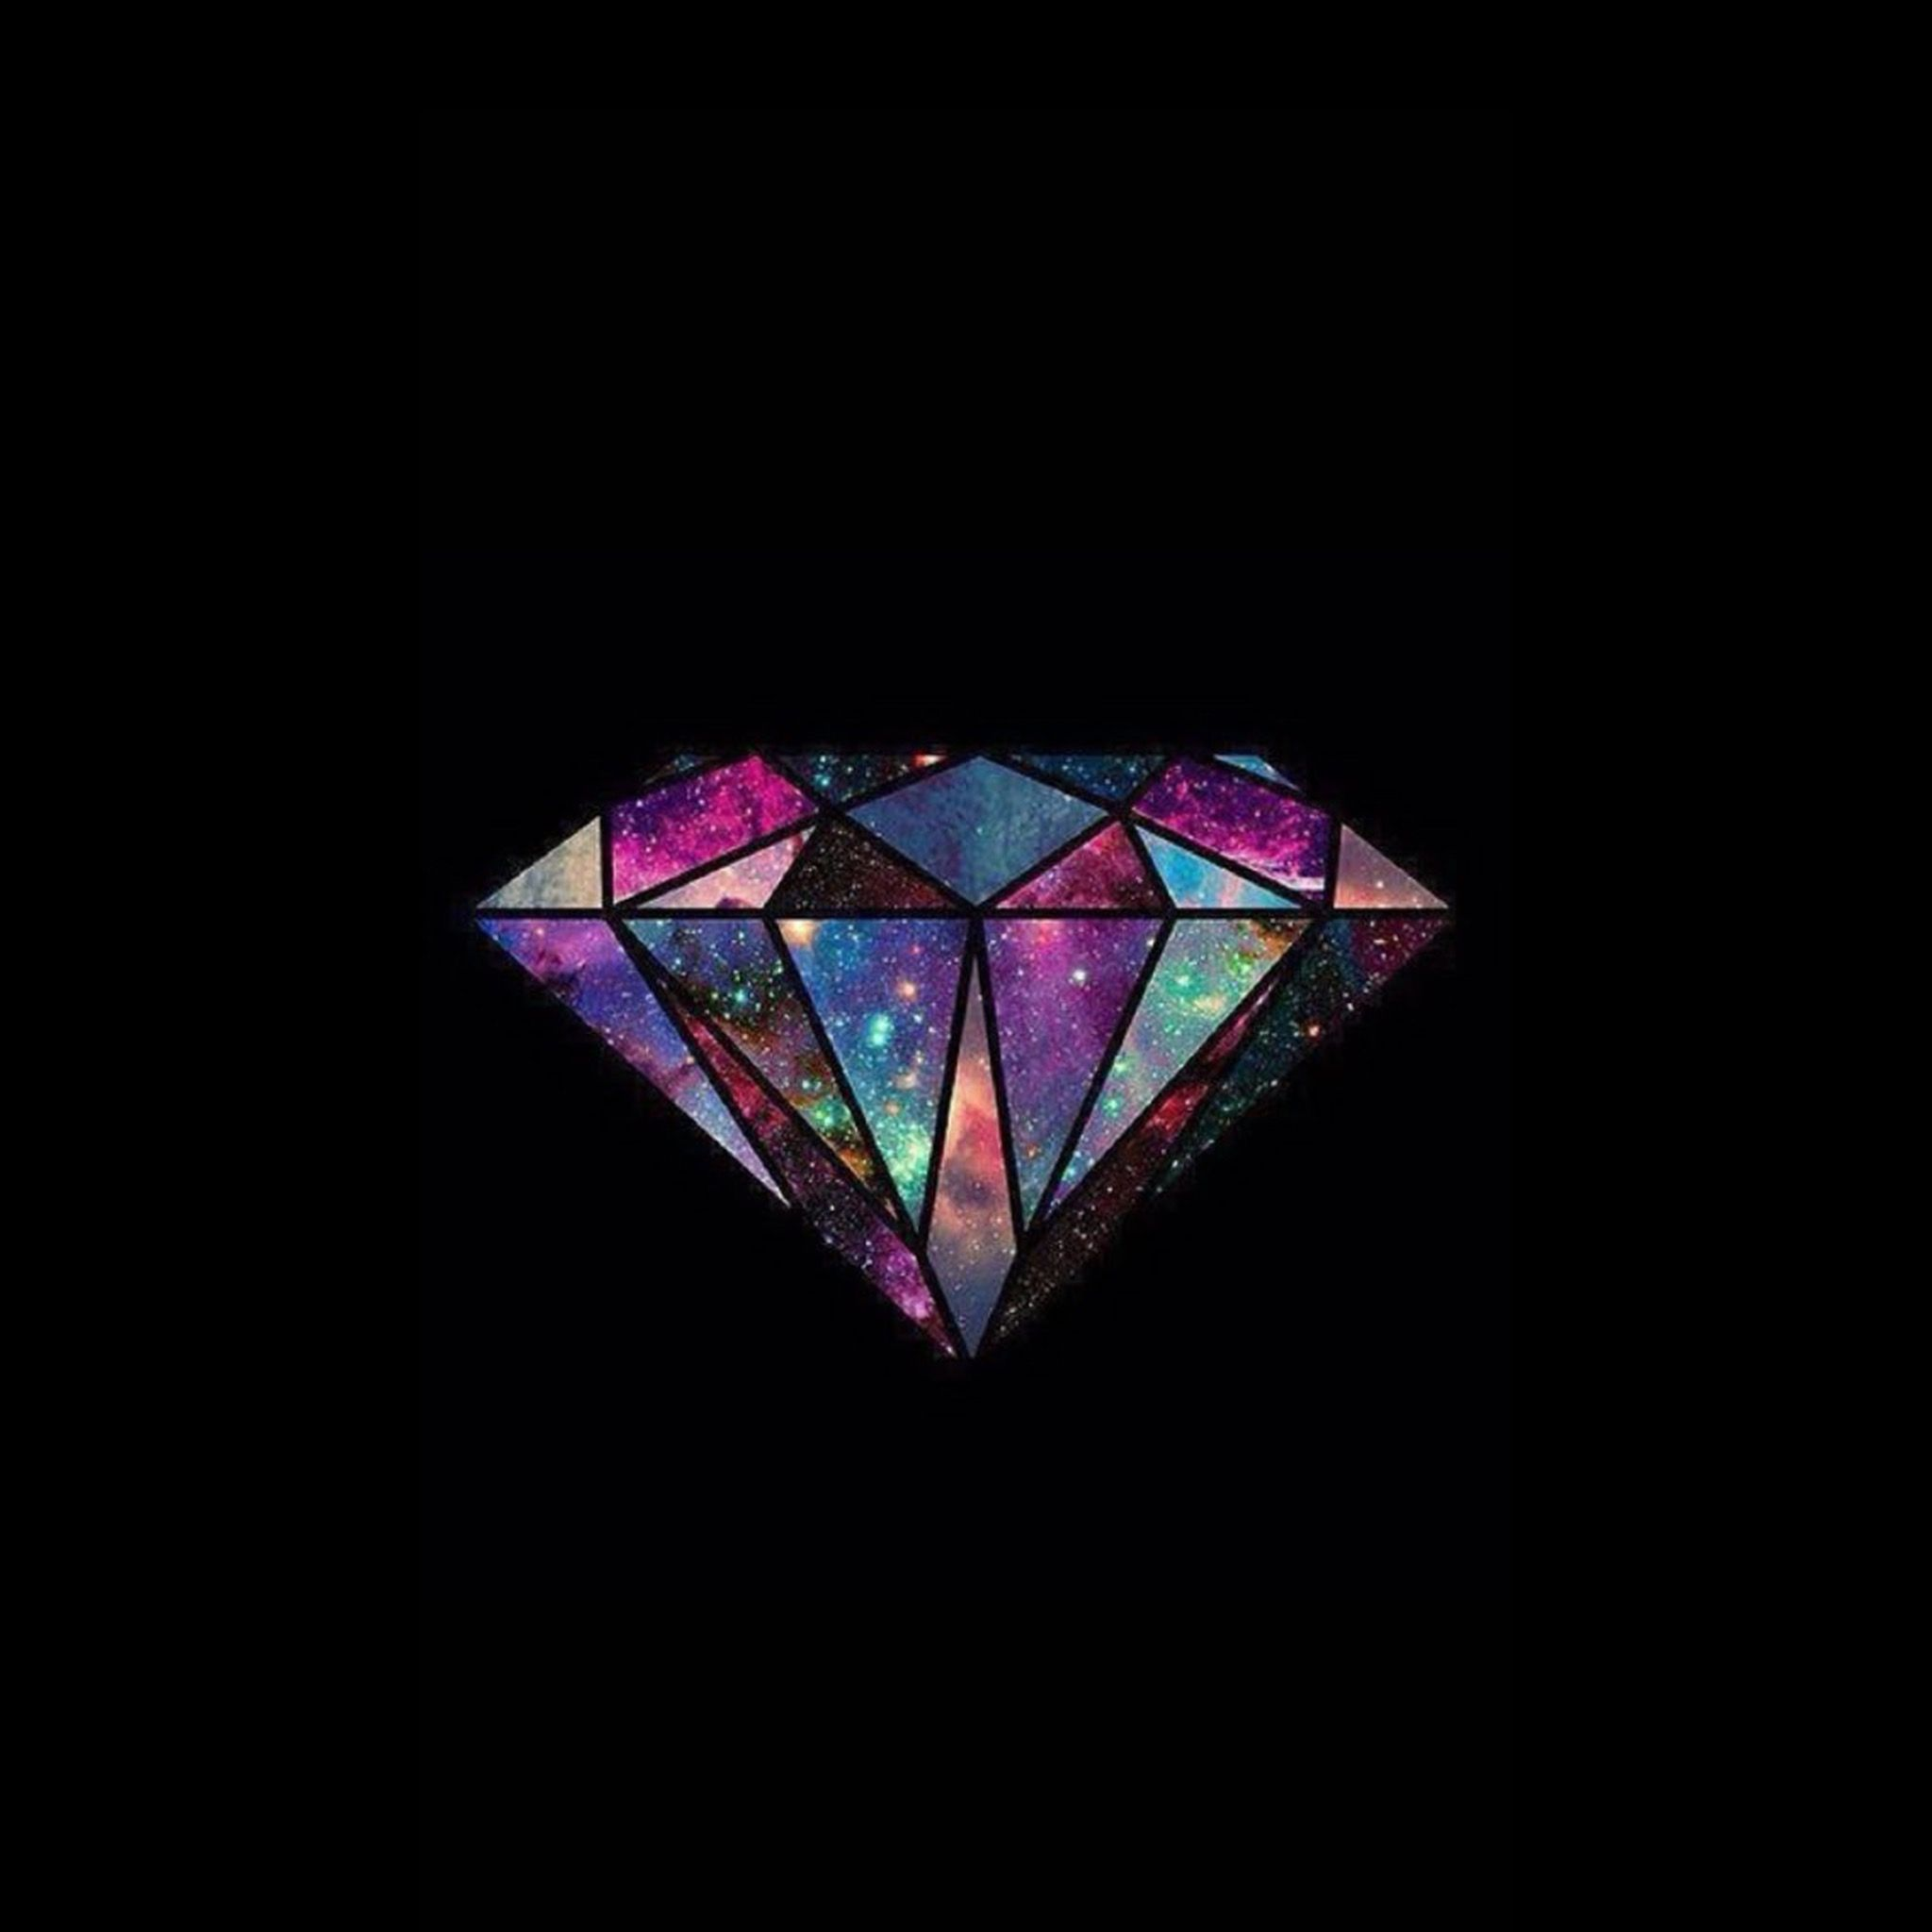 Galaxy Diamond Wallpapers Top Free Galaxy Diamond Backgrounds